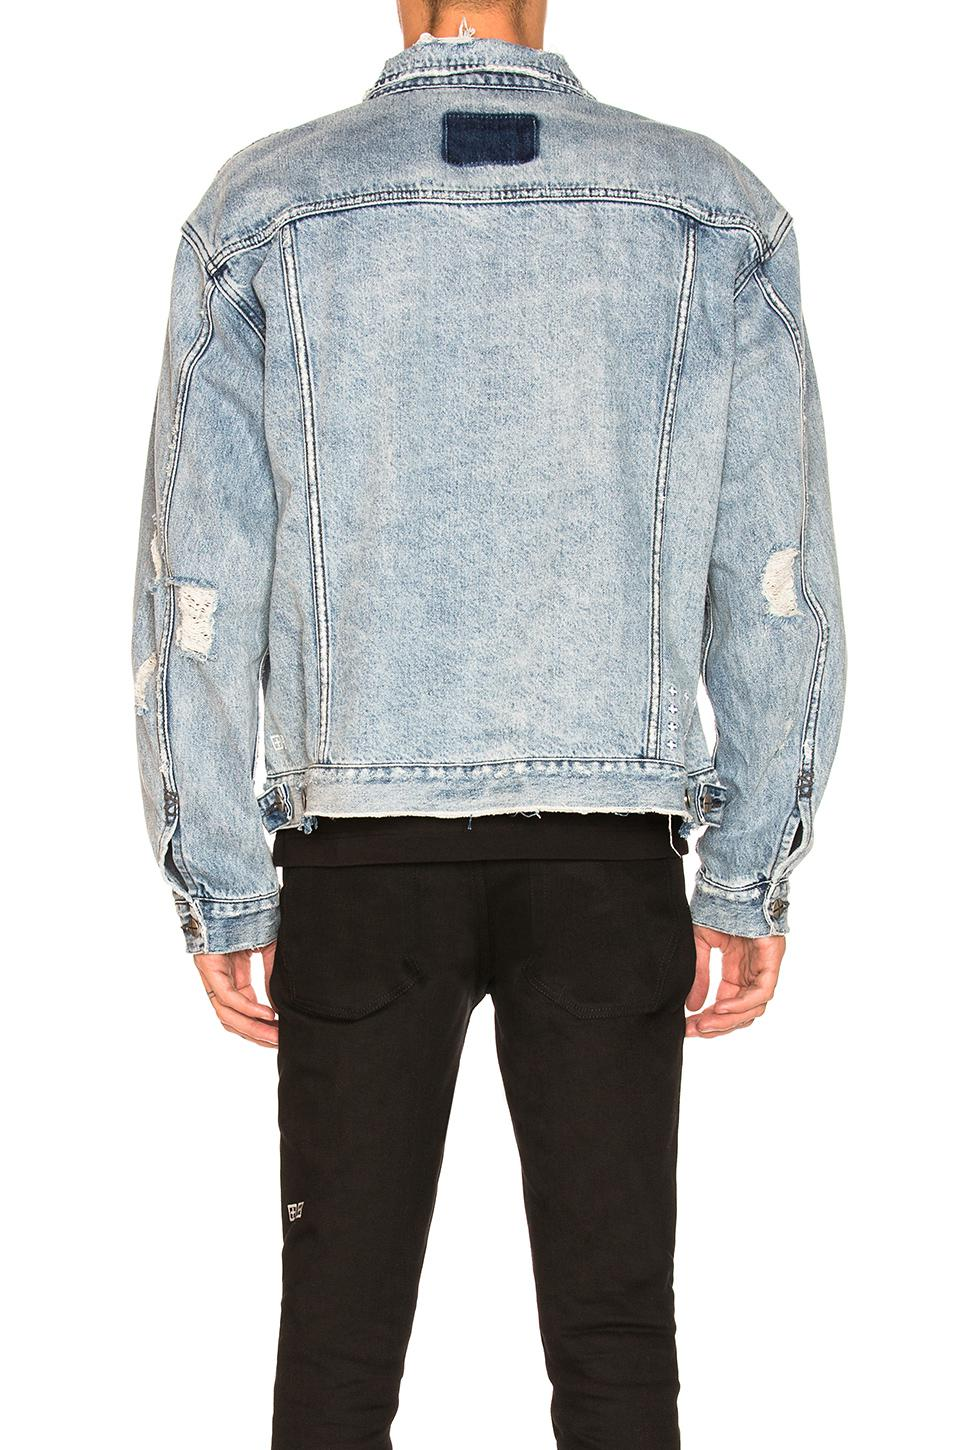 Lyst - Ksubi X Travis Scott Oh G Ghosted Denim Jacket in Blue for Men 1e3bf453e